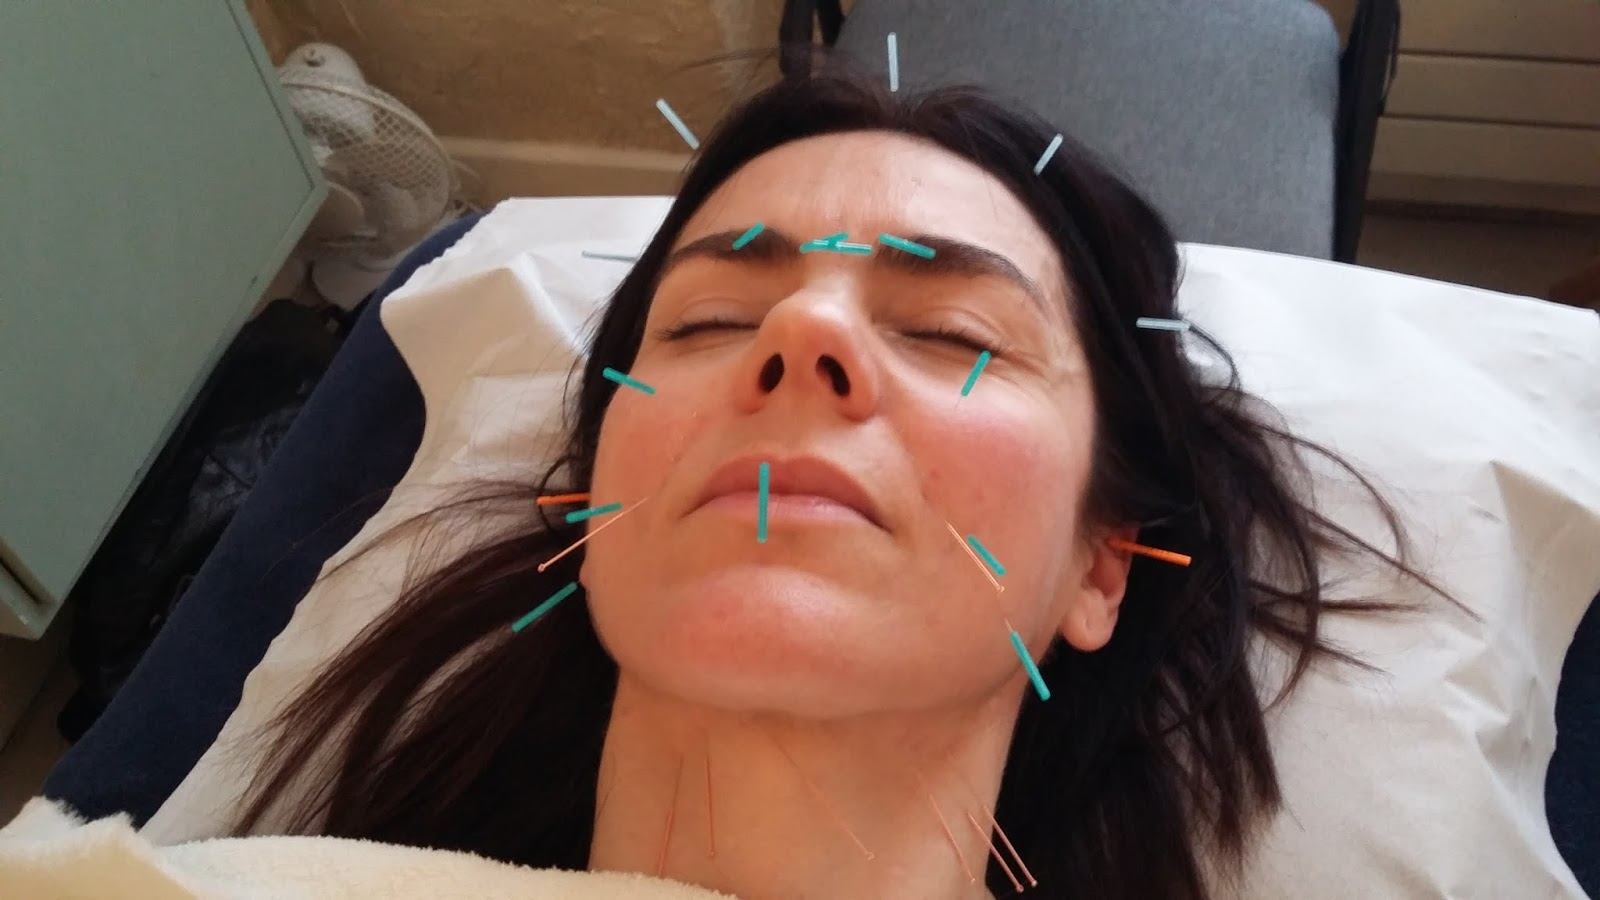 The rejuvenating acupuncture facial it doesnt hurt honest calling melanies facial rejuvenation acupuncture an acupuncture facial is a disservice as it also includes cupping and massage its a two hour treatment solutioingenieria Image collections